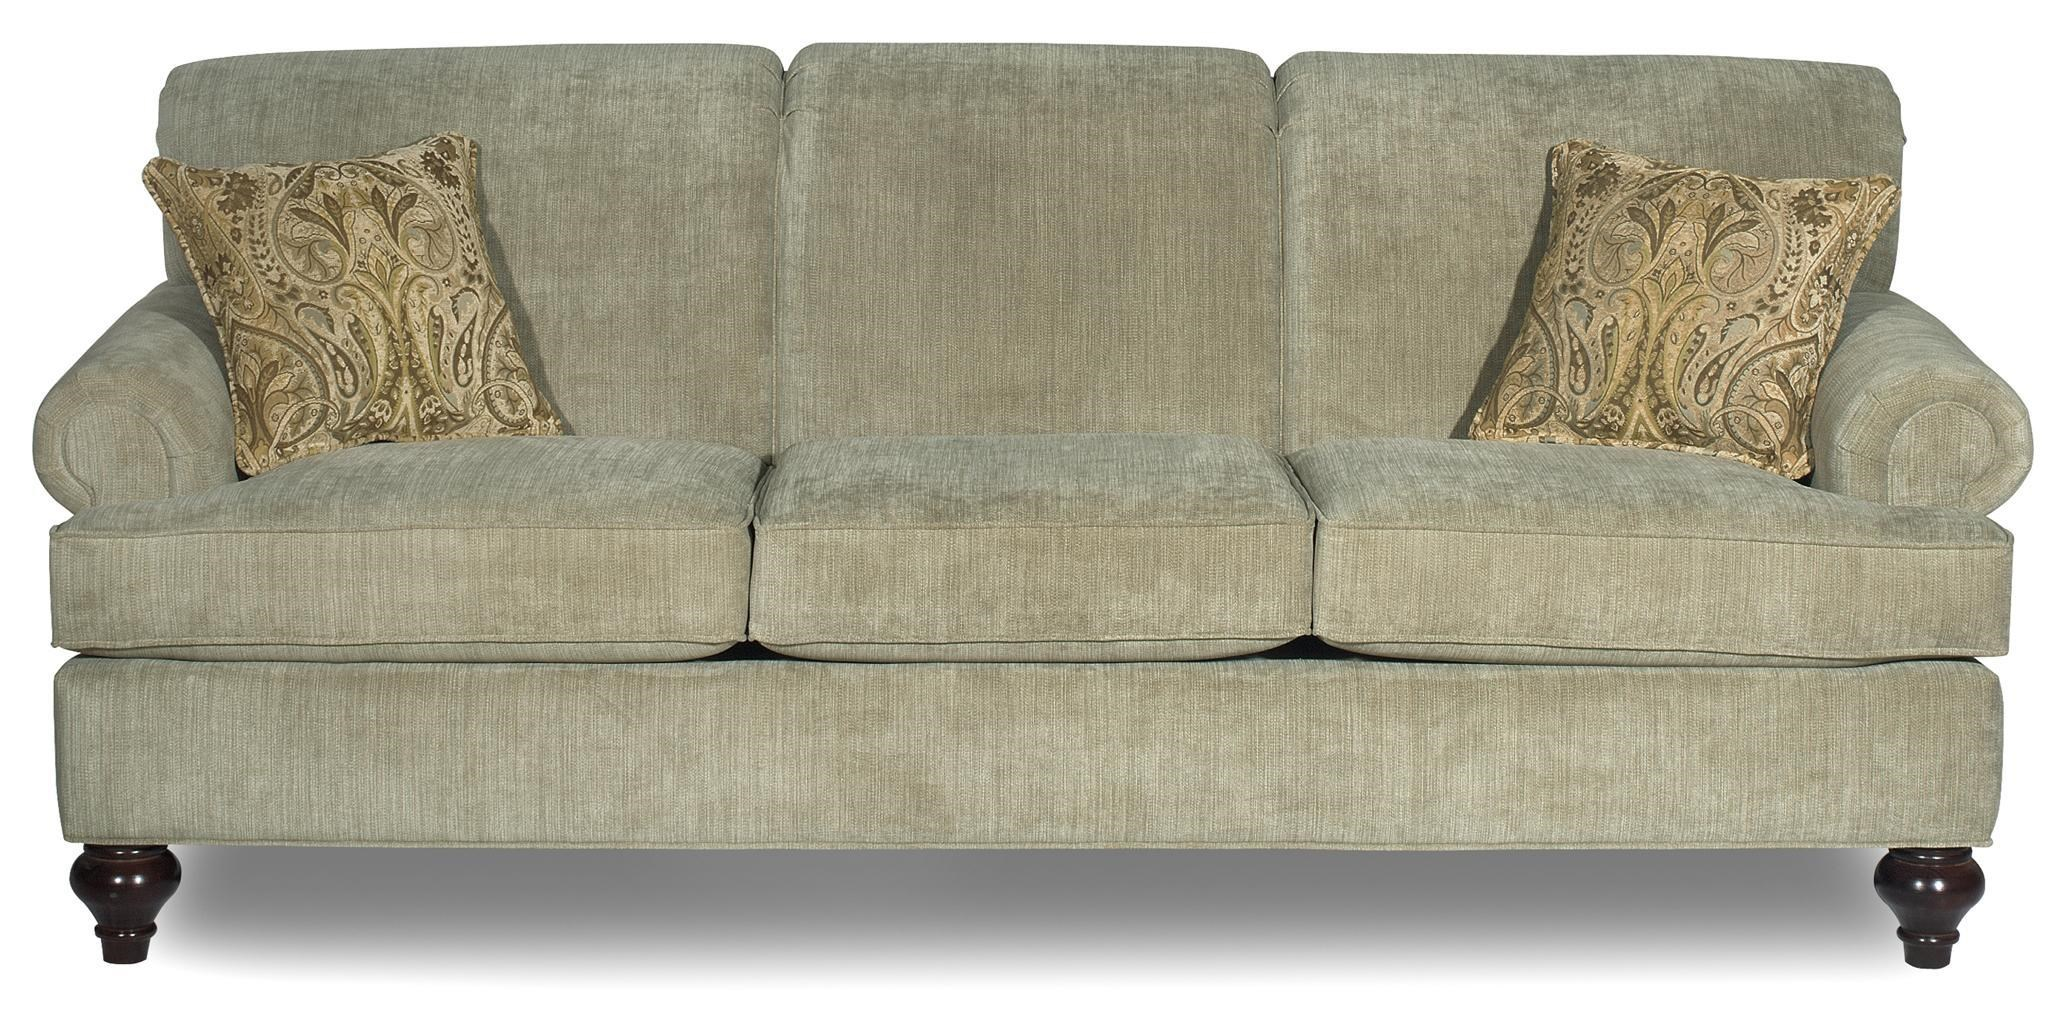 Hickory Craft 7047 Traditional Sofa With Turned Wood Legs